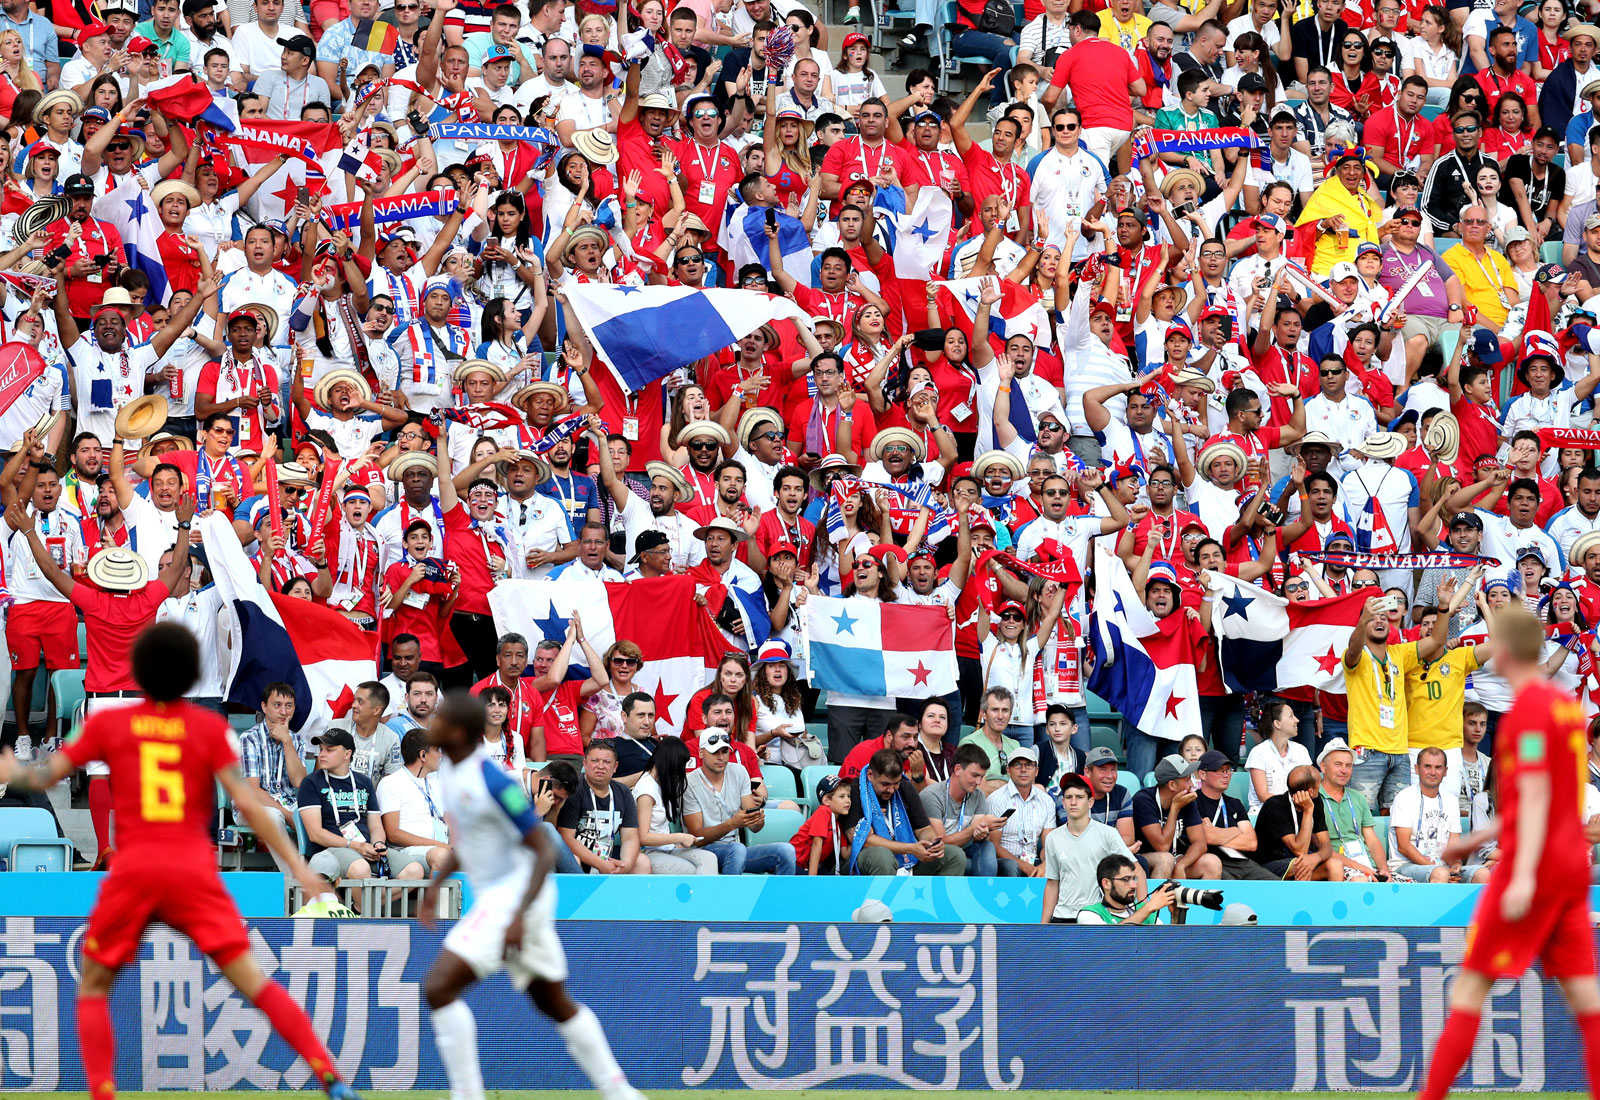 Panama fans take in their first World Cup game